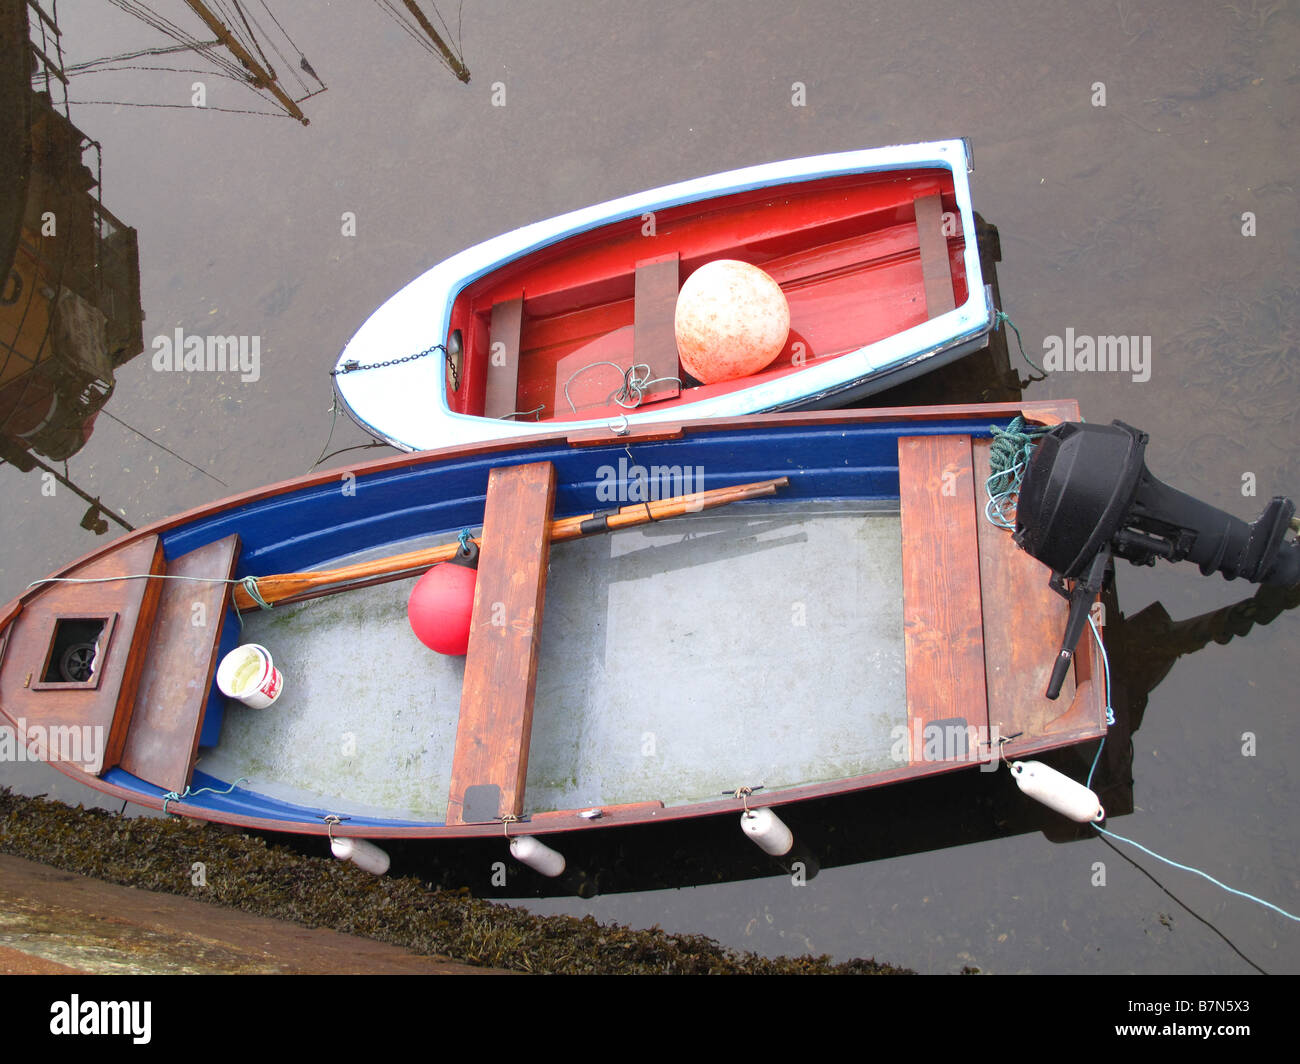 Rowing boats tied up at pier - Stock Image